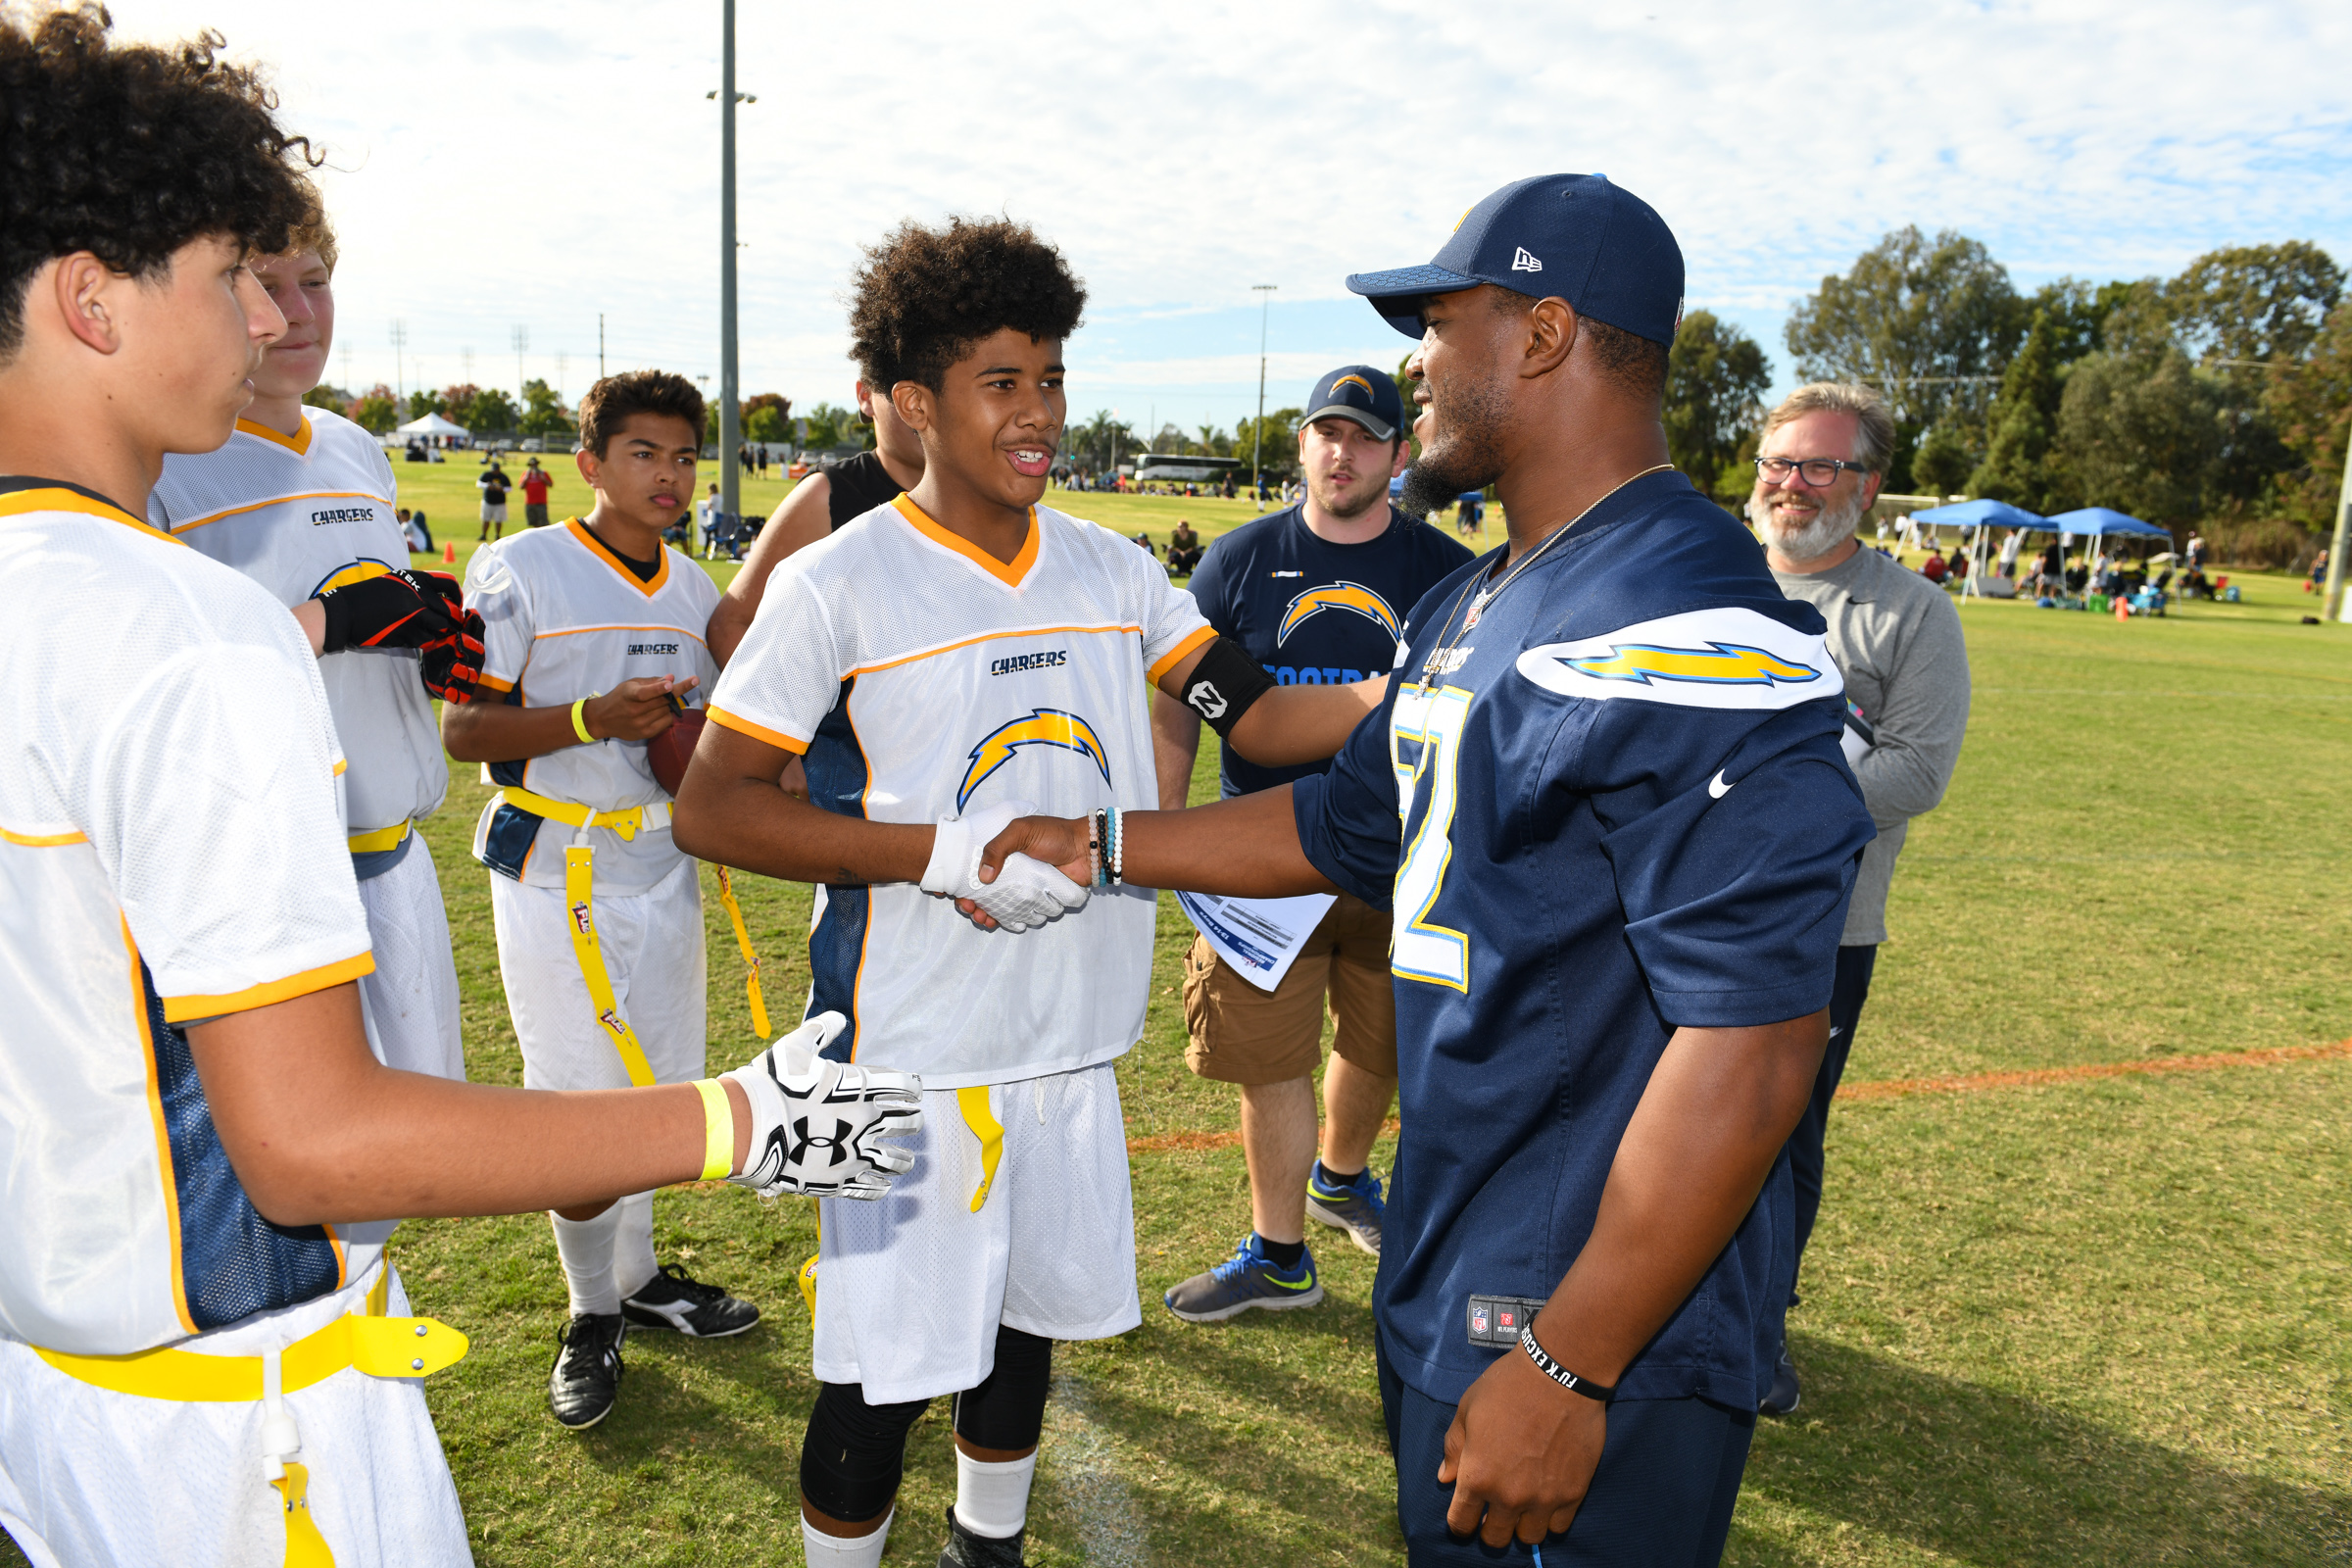 Los Angeles Chargers Making an Impact in L.A.